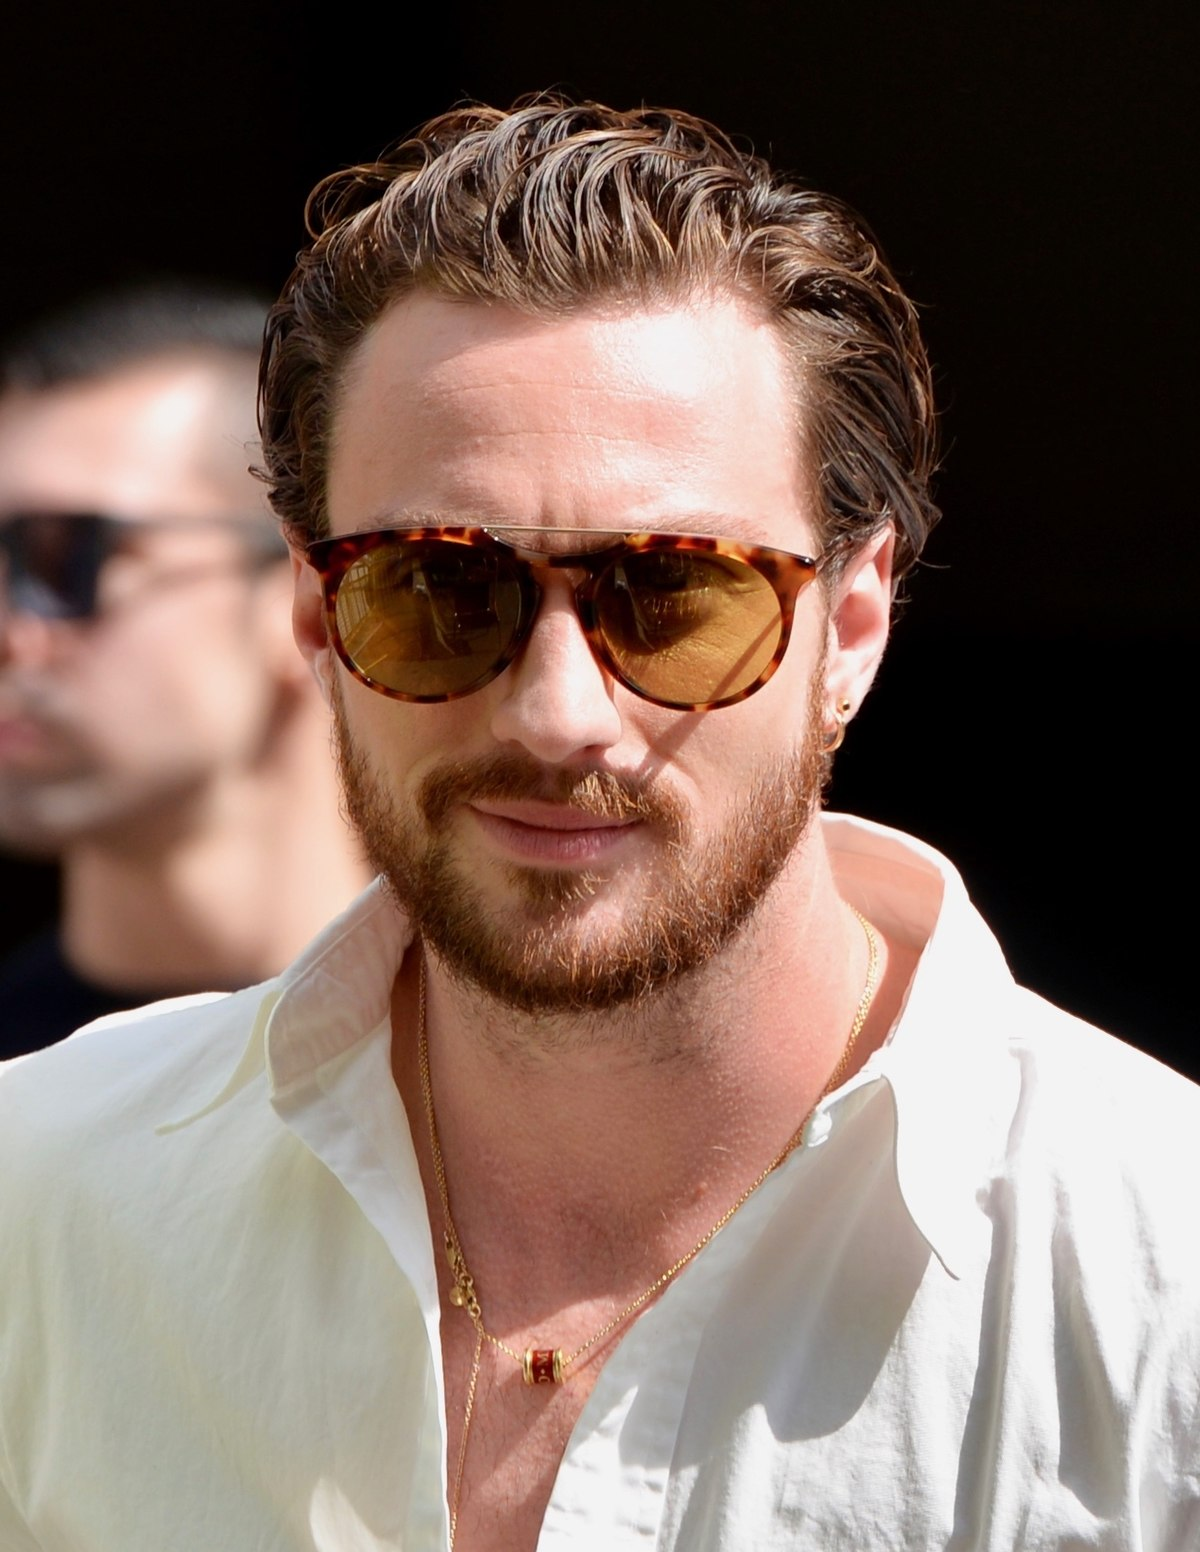 Aaron Taylor-Johnson - Wikipedia